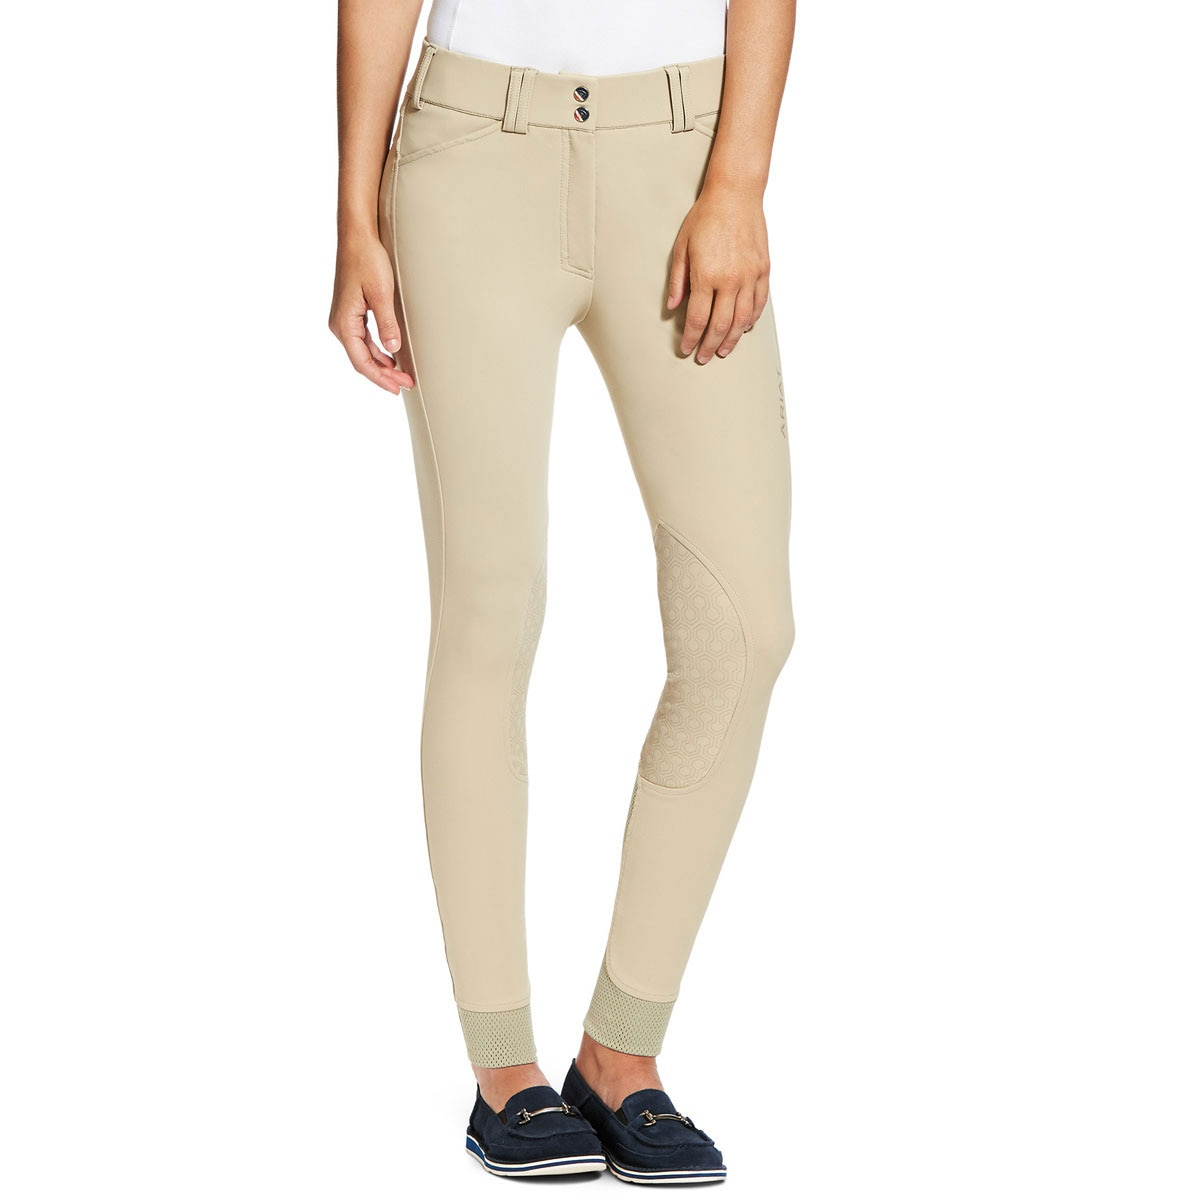 Ariat Tri-Factor Ice Fil Knee Patch Breech- Exclusive!